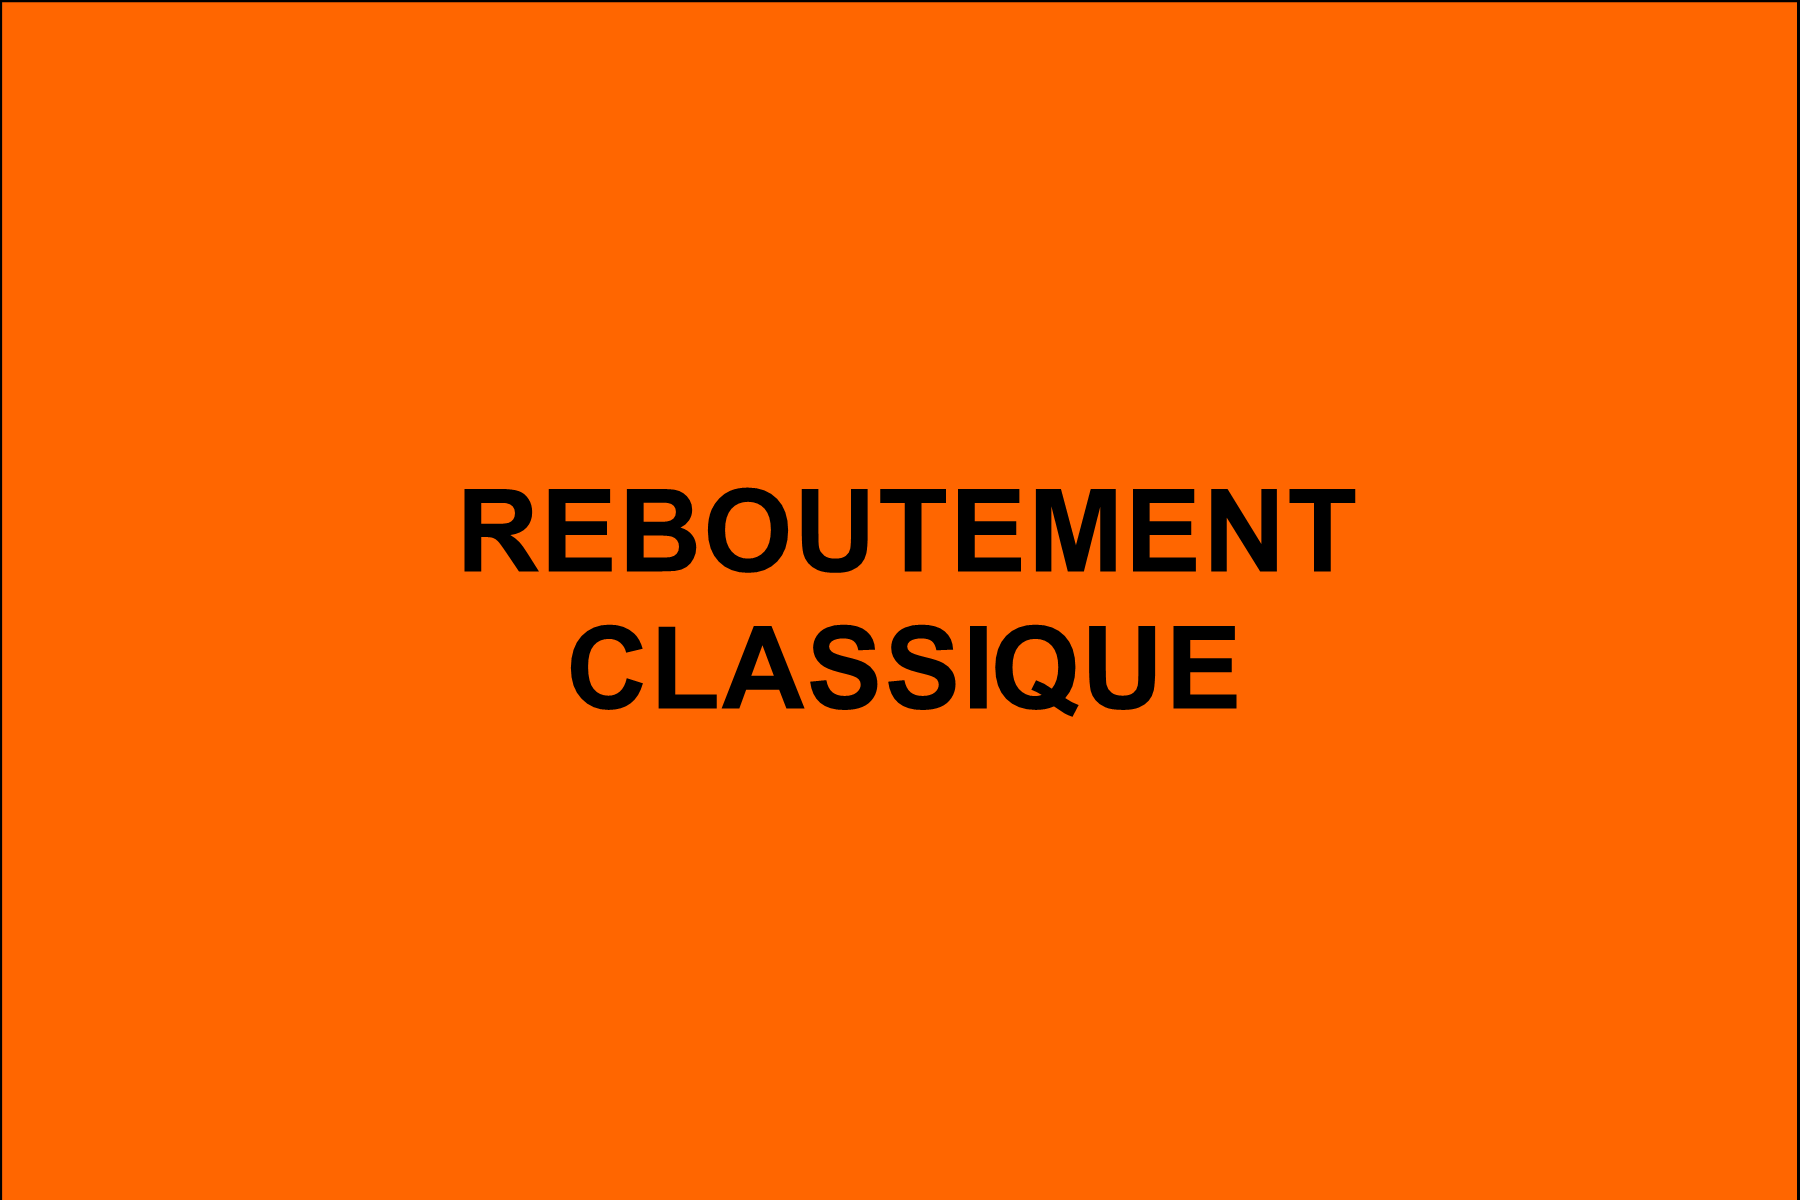 REBOUTEMENT SOIN NEURO MUSCULAIRE